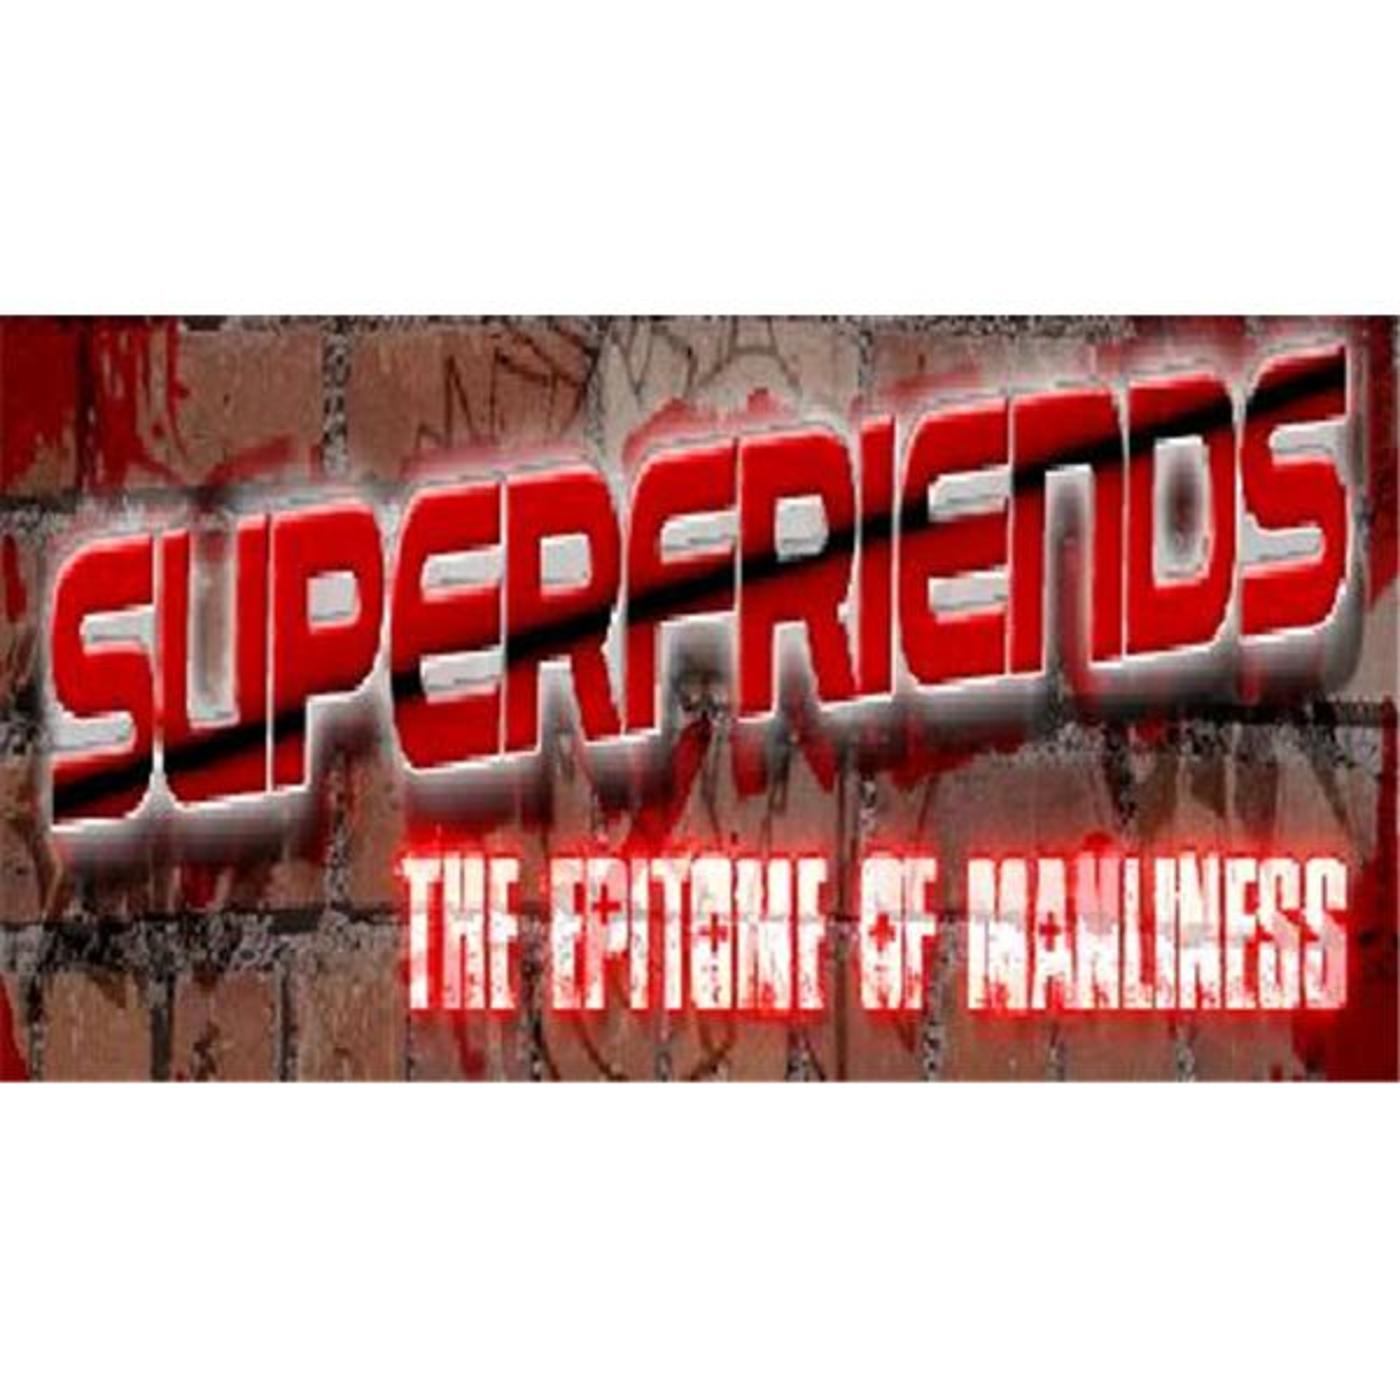 The Superfriends Variety Show Logo